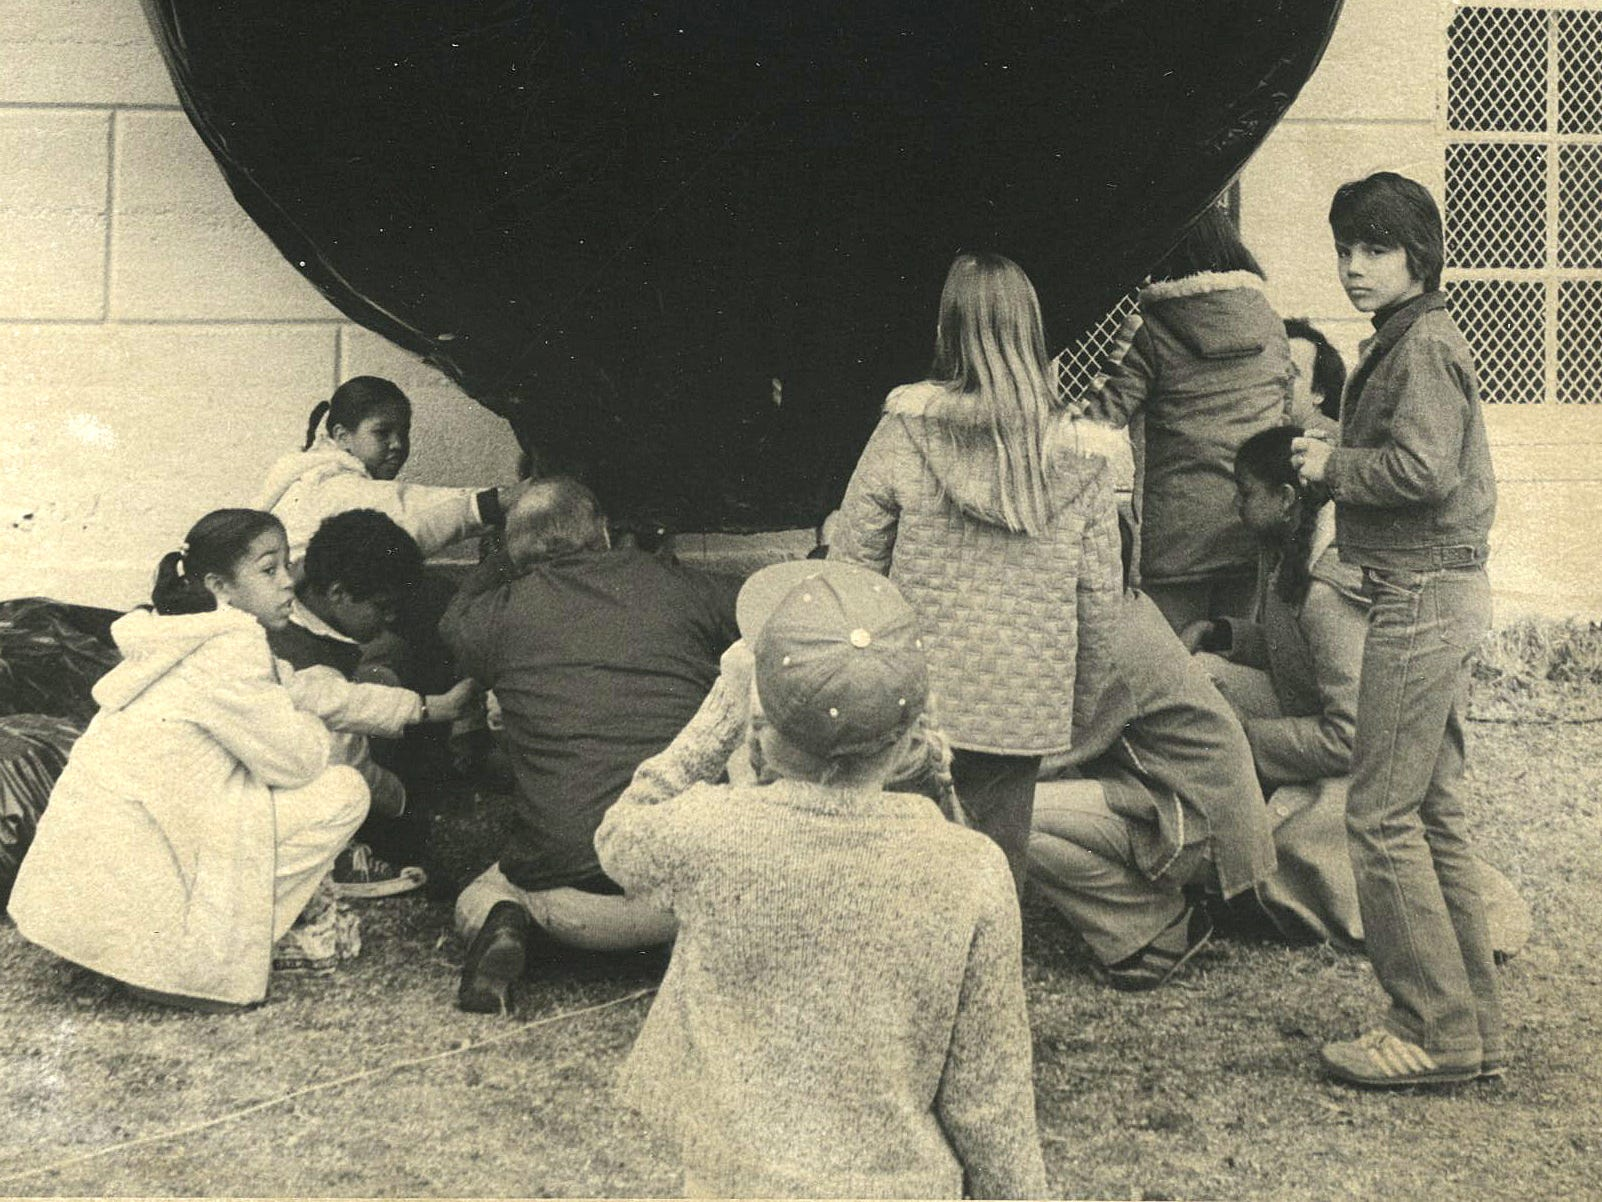 Students at Boyd Elementary School take the final step - building a fire to heat the air - in launching a hot air balloon constructed by pupils in 1979.